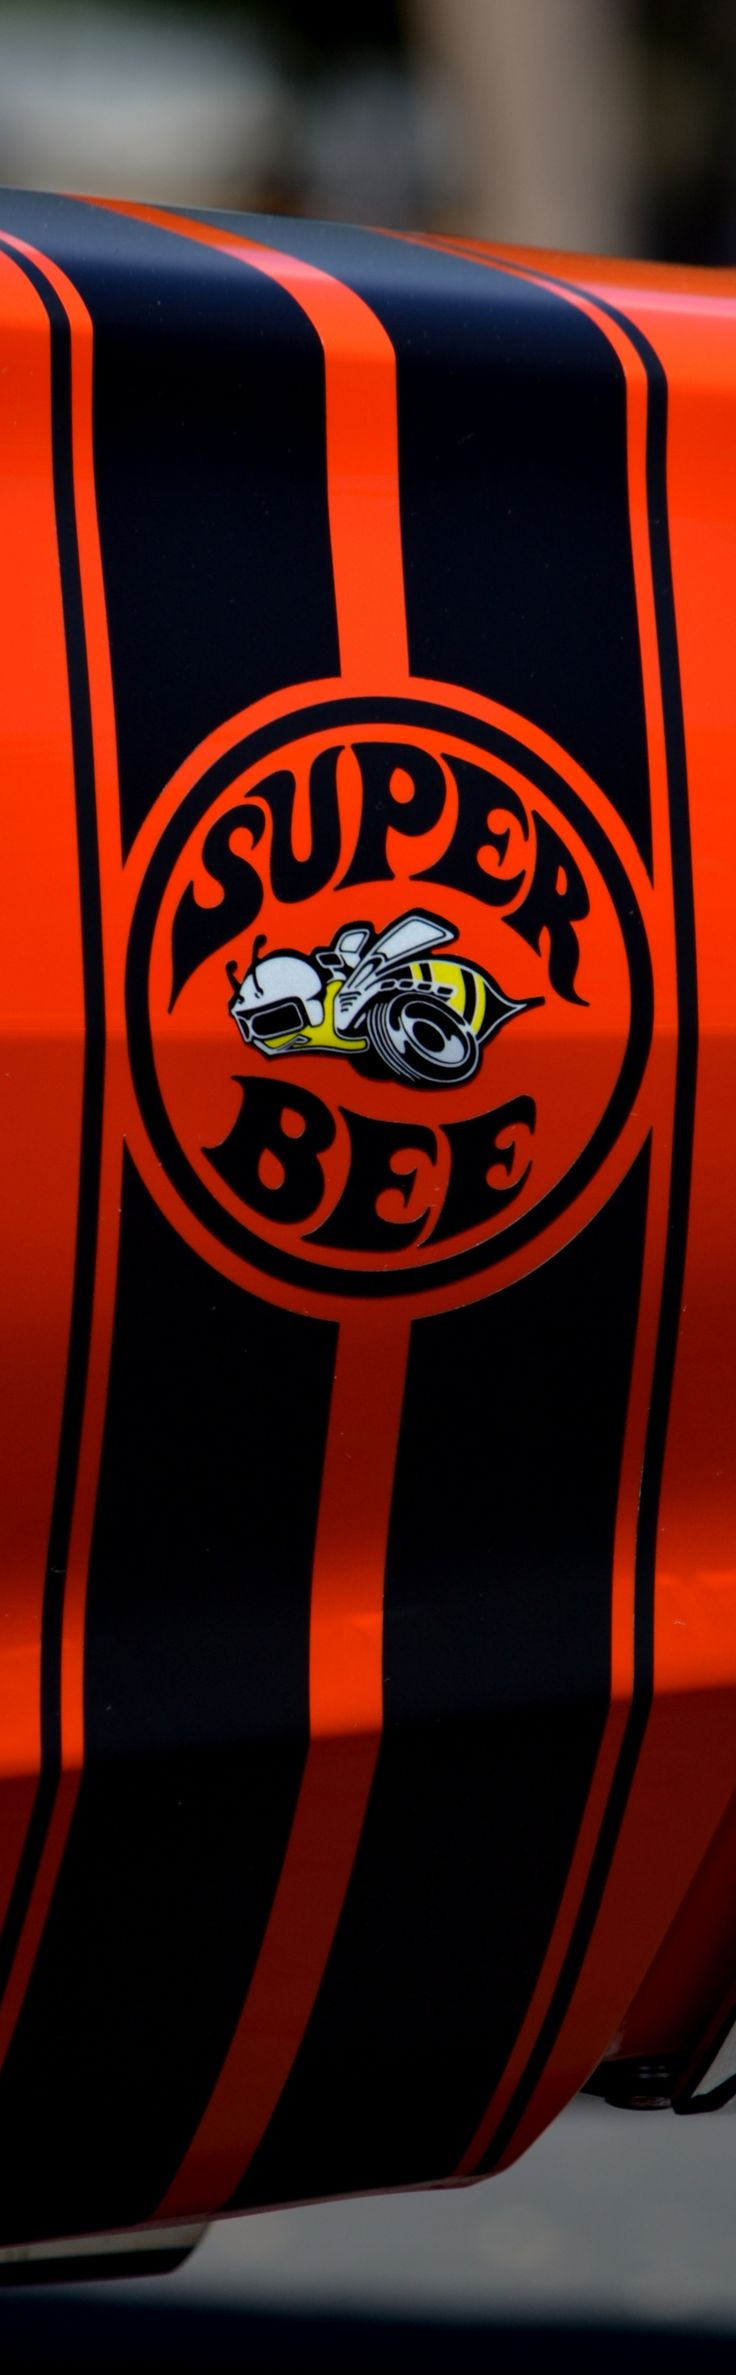 Super Bee...Re-pin brought to you by agents of #Carinsurance at #HouseofInsurance in Eugene, Oregon